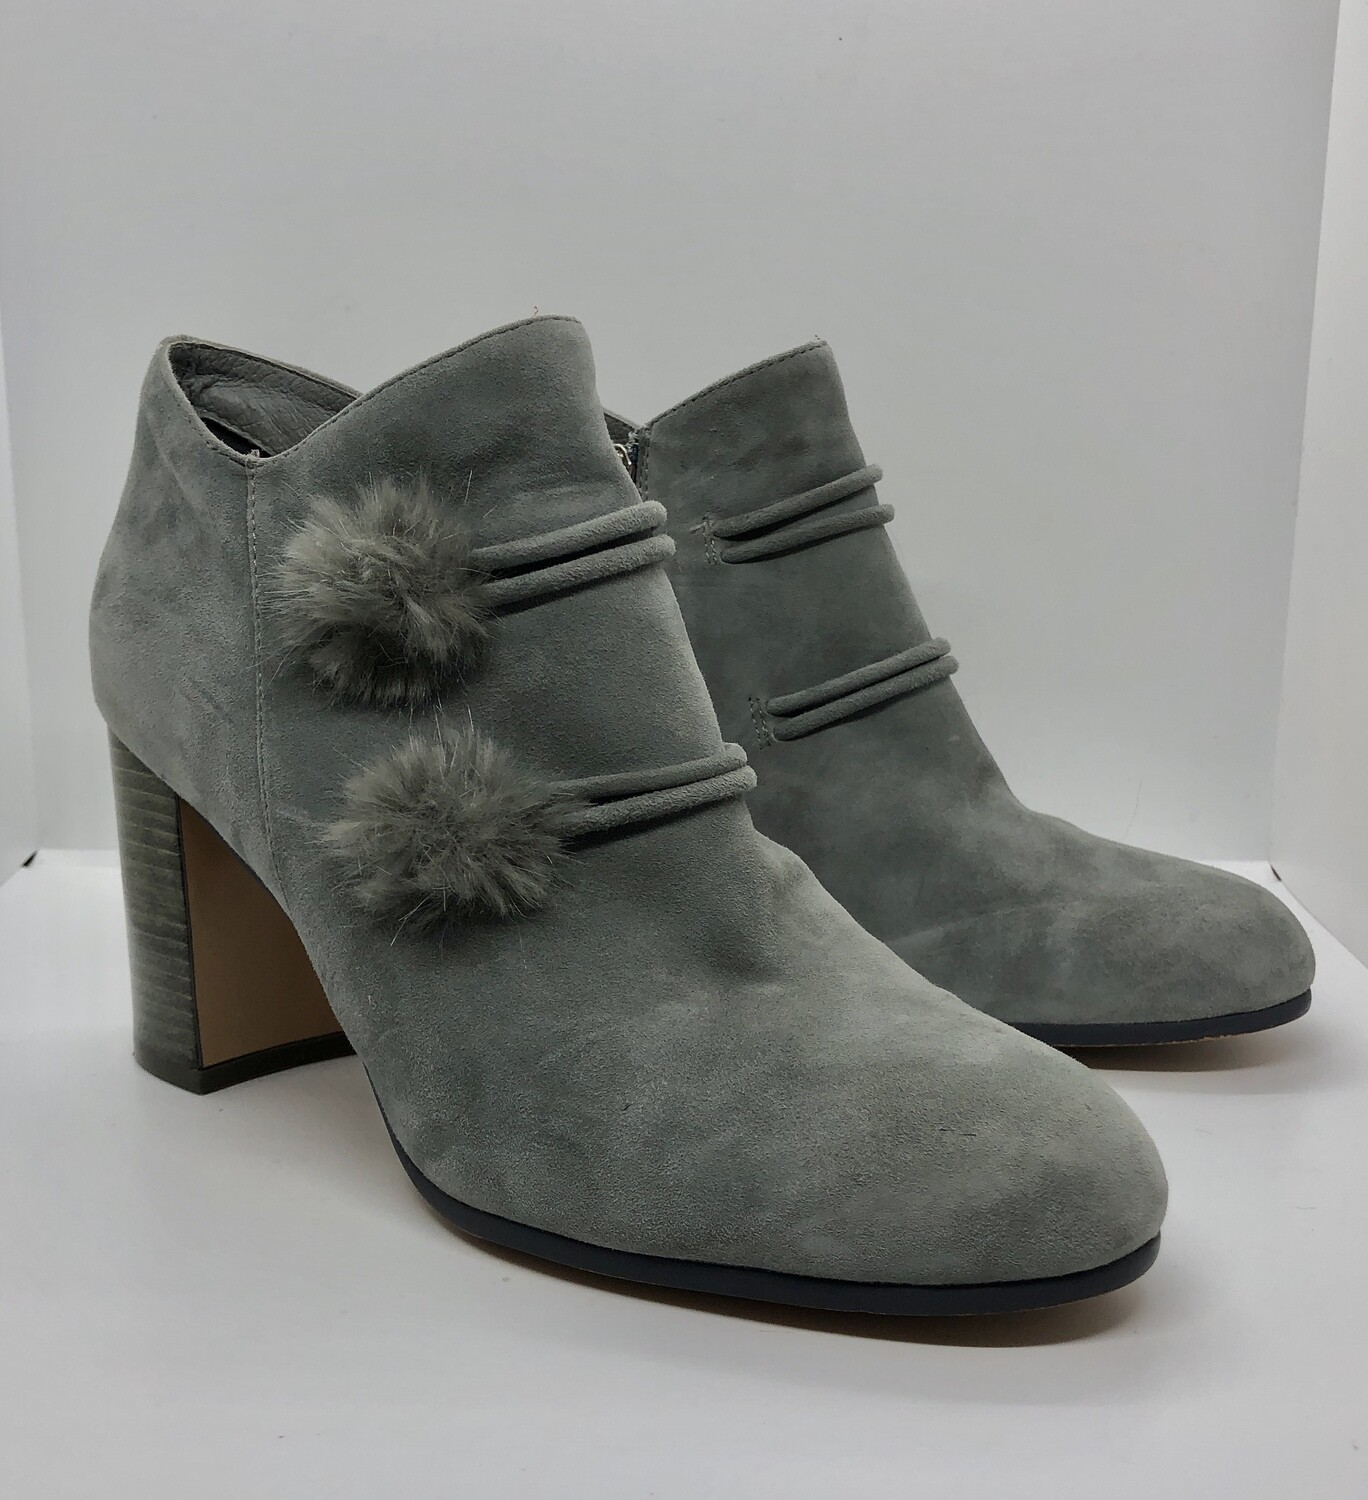 SILENT D by Free People Gray Suede Pom-Pom Ankle Booties size 10